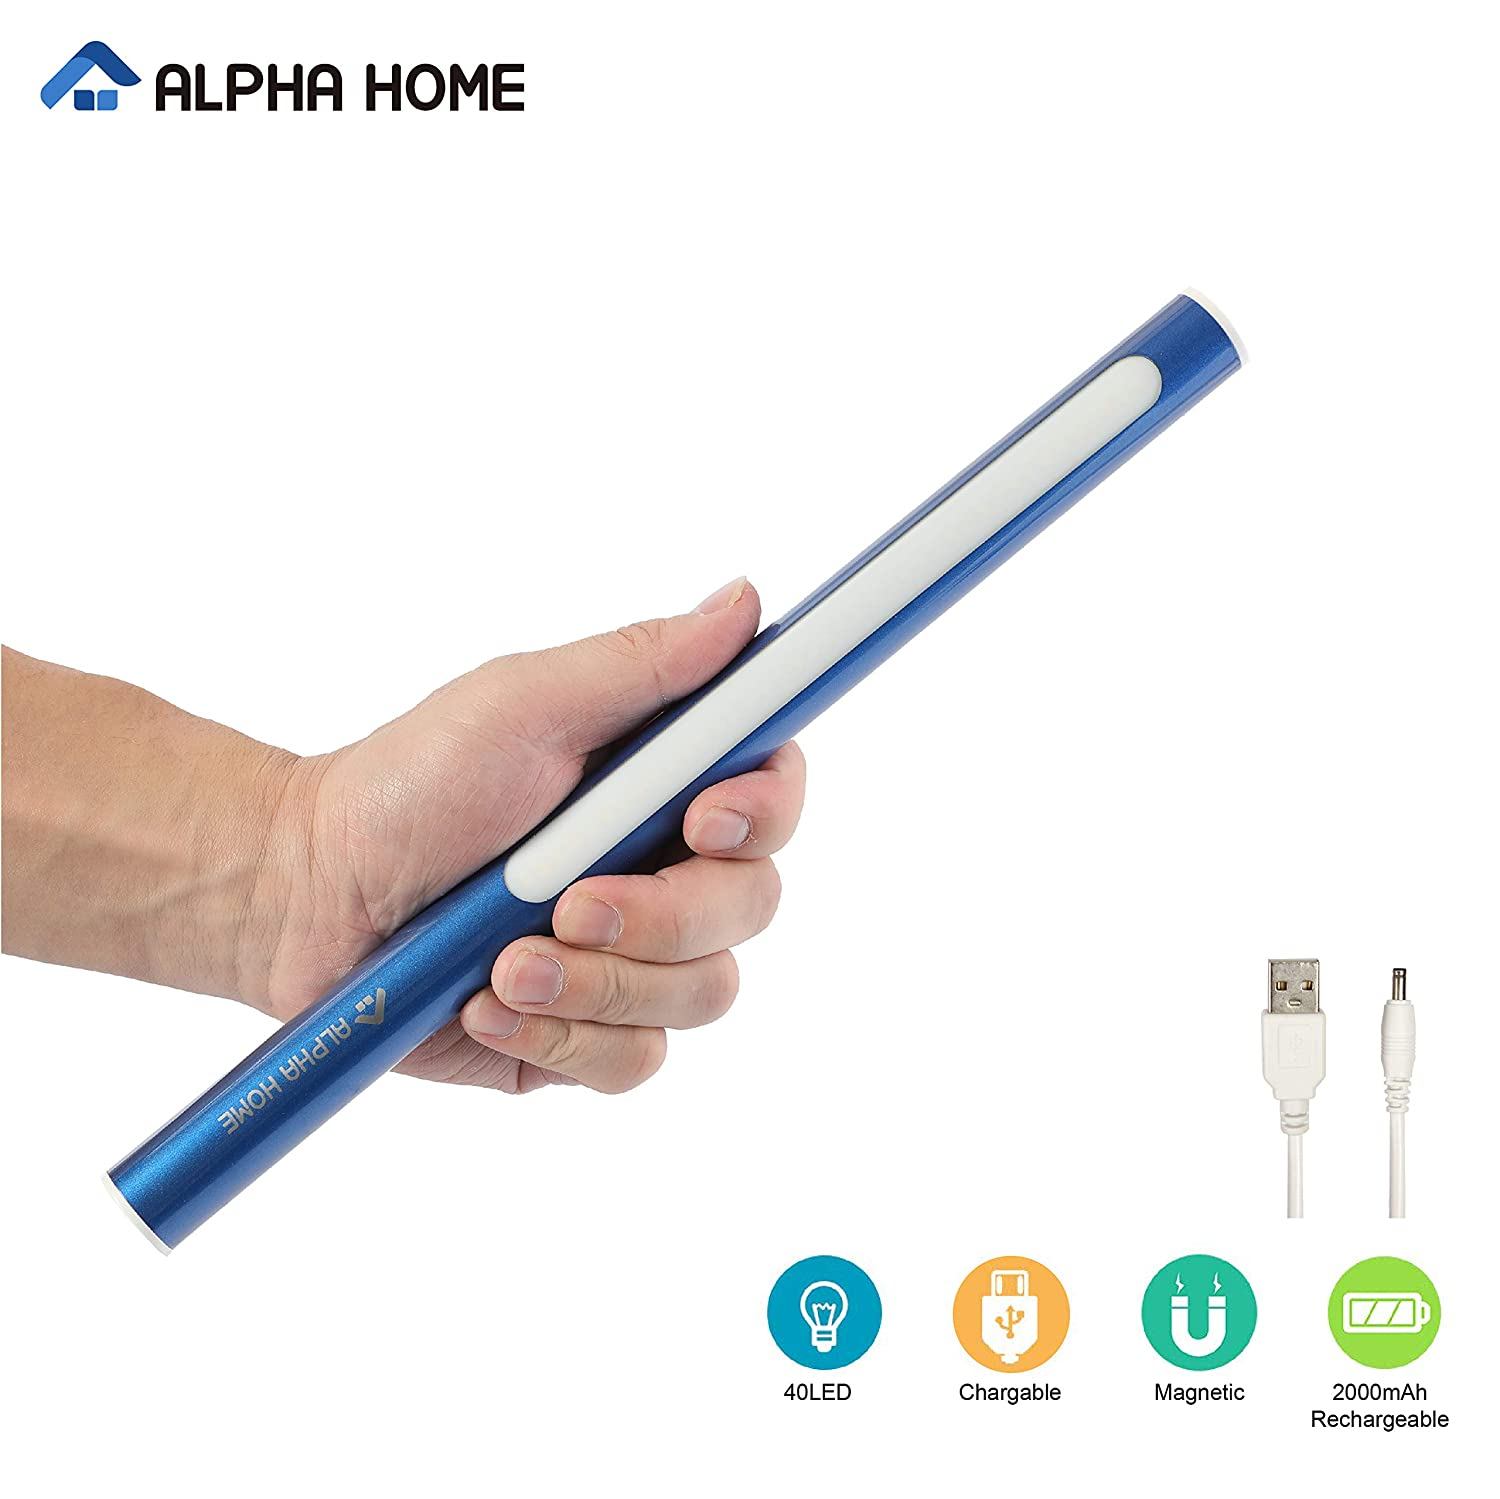 ALPHA HOME 40 LED Closet Light, Portable USB Rechargeable Sport Cupboard Light, Stick on Anywhere Magnetic LED Night Light, Blue